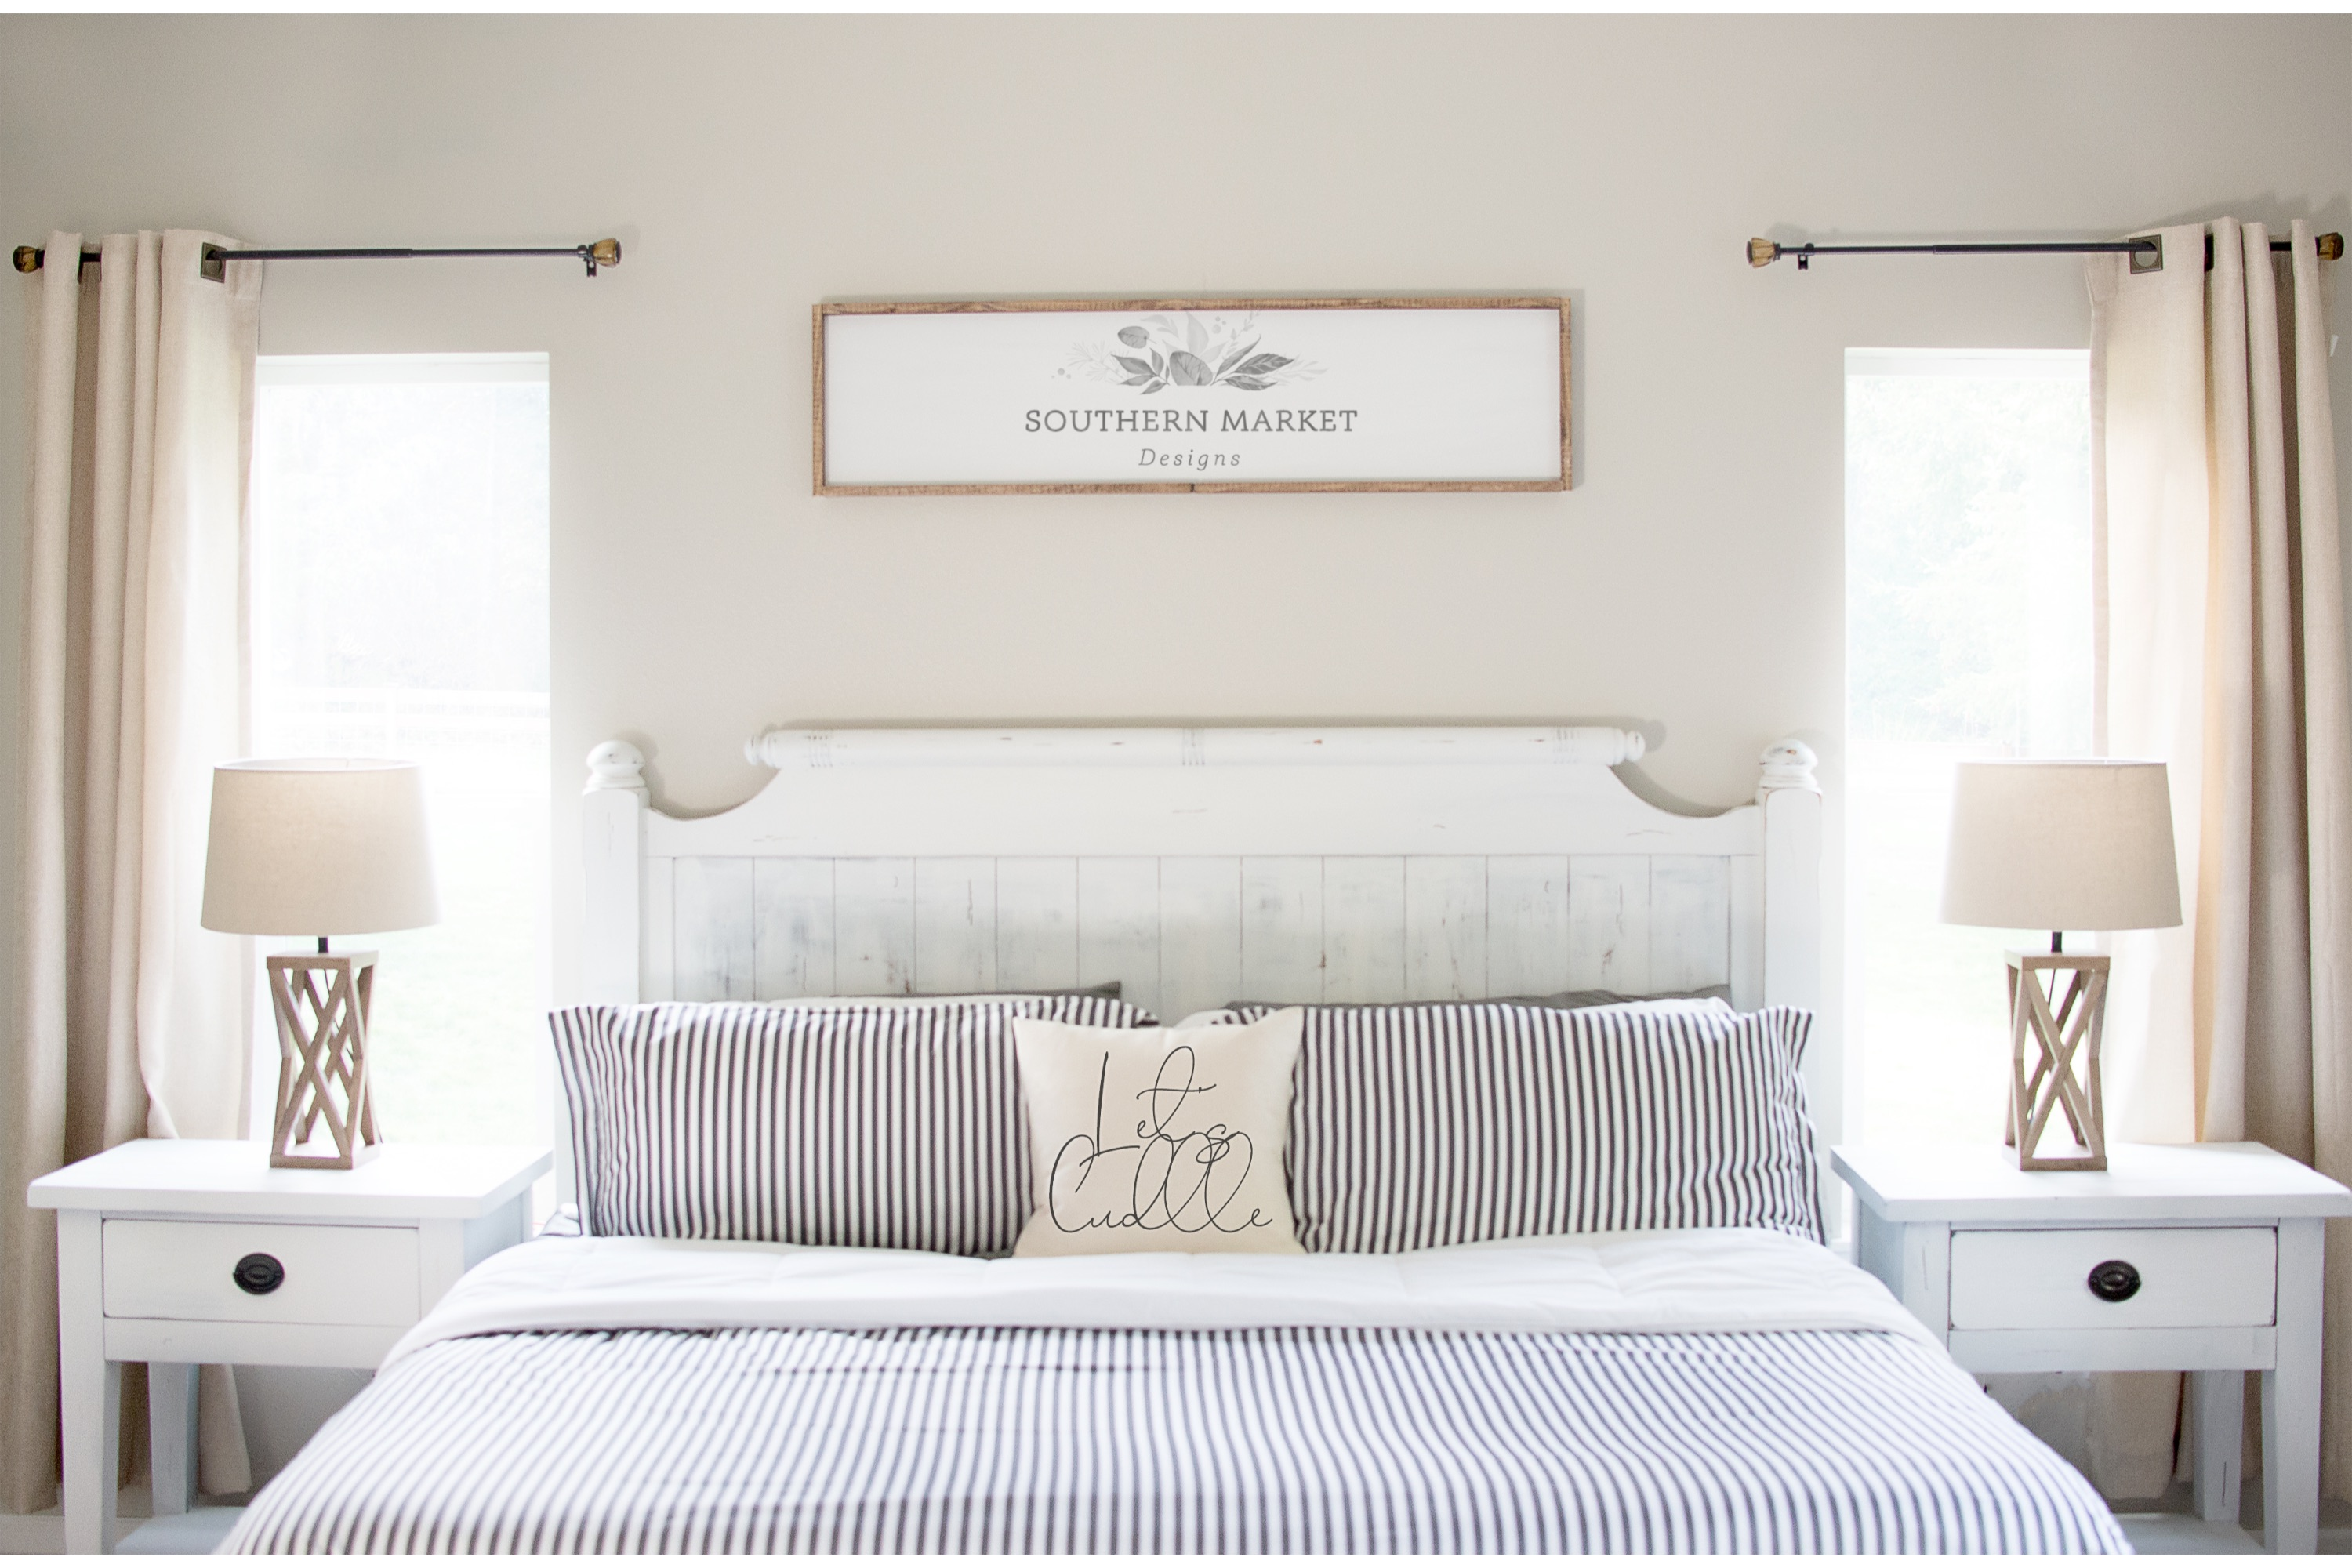 Bedroom Sign Mock Up Design Bundle Stock Photography example image 7